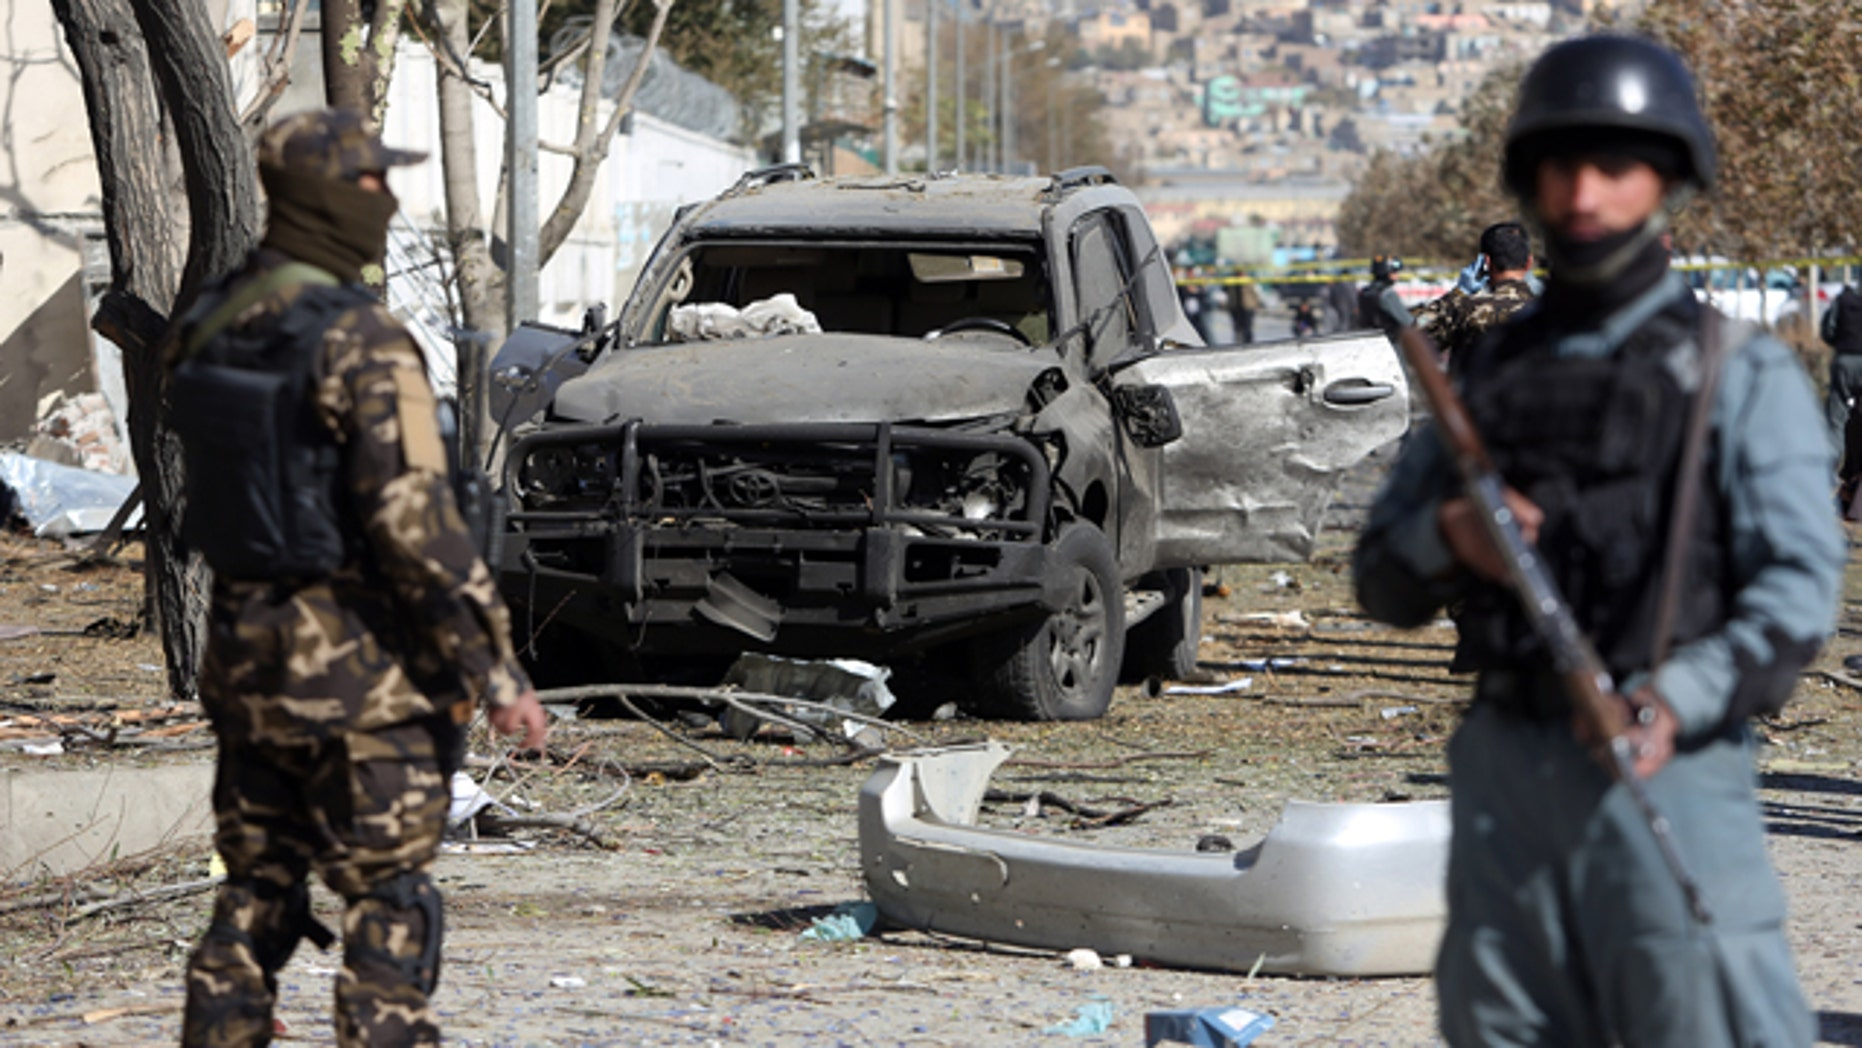 November 16, 2014: Afghan security forces inspect the site of a suicide attack in Kabul. A suicide bomber tried to assassinate a prominent female member of Afghanistan's parliament on Sunday, killing three people and wounding the lawmaker, a senior official said. (AP Photo/Rahmat Gul)